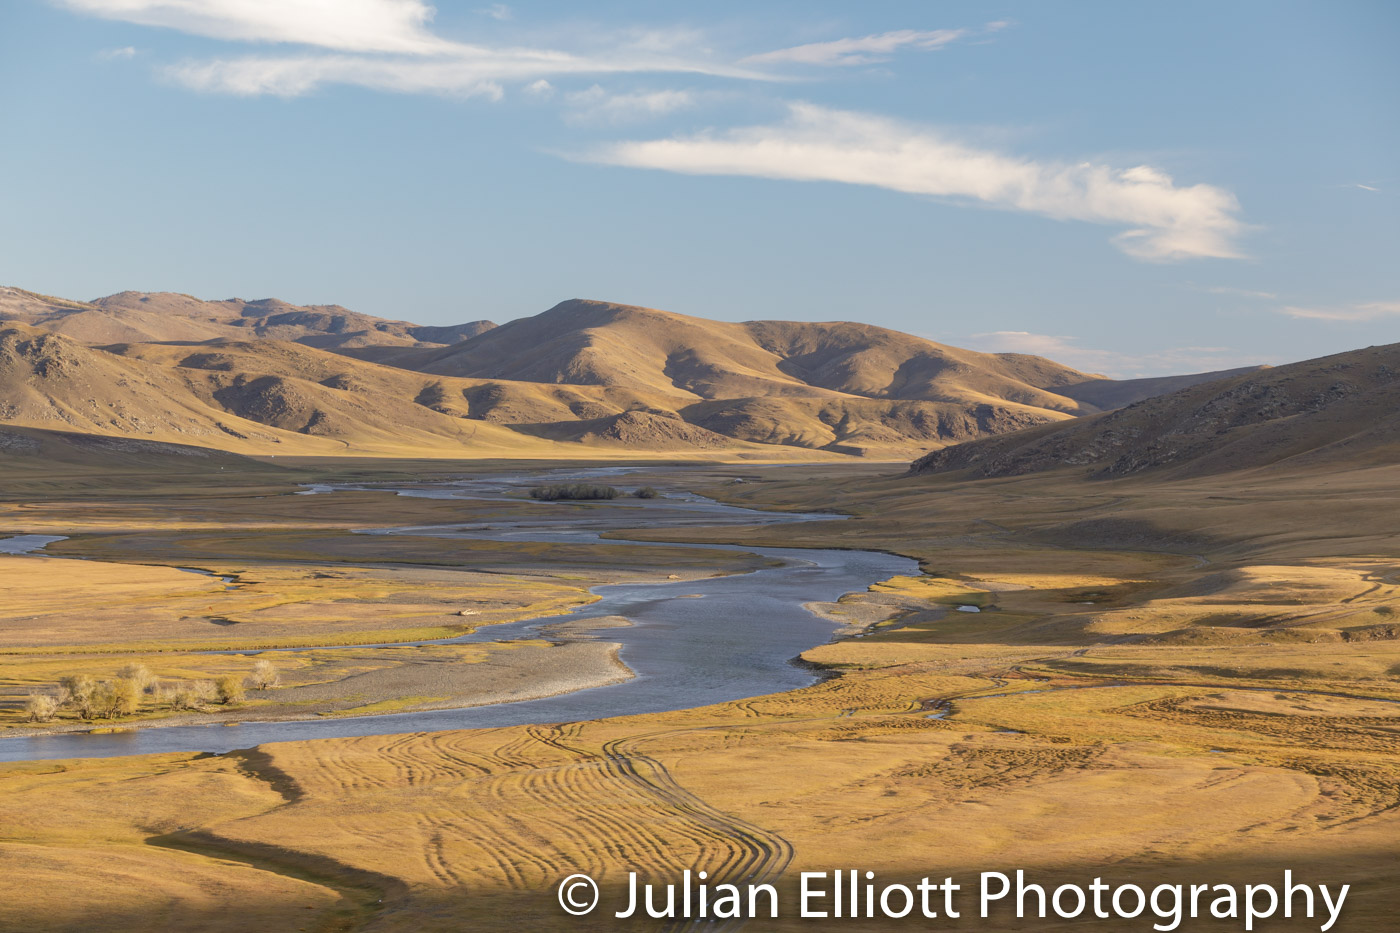 The beautiful Orkhon river valley in Mongolia.